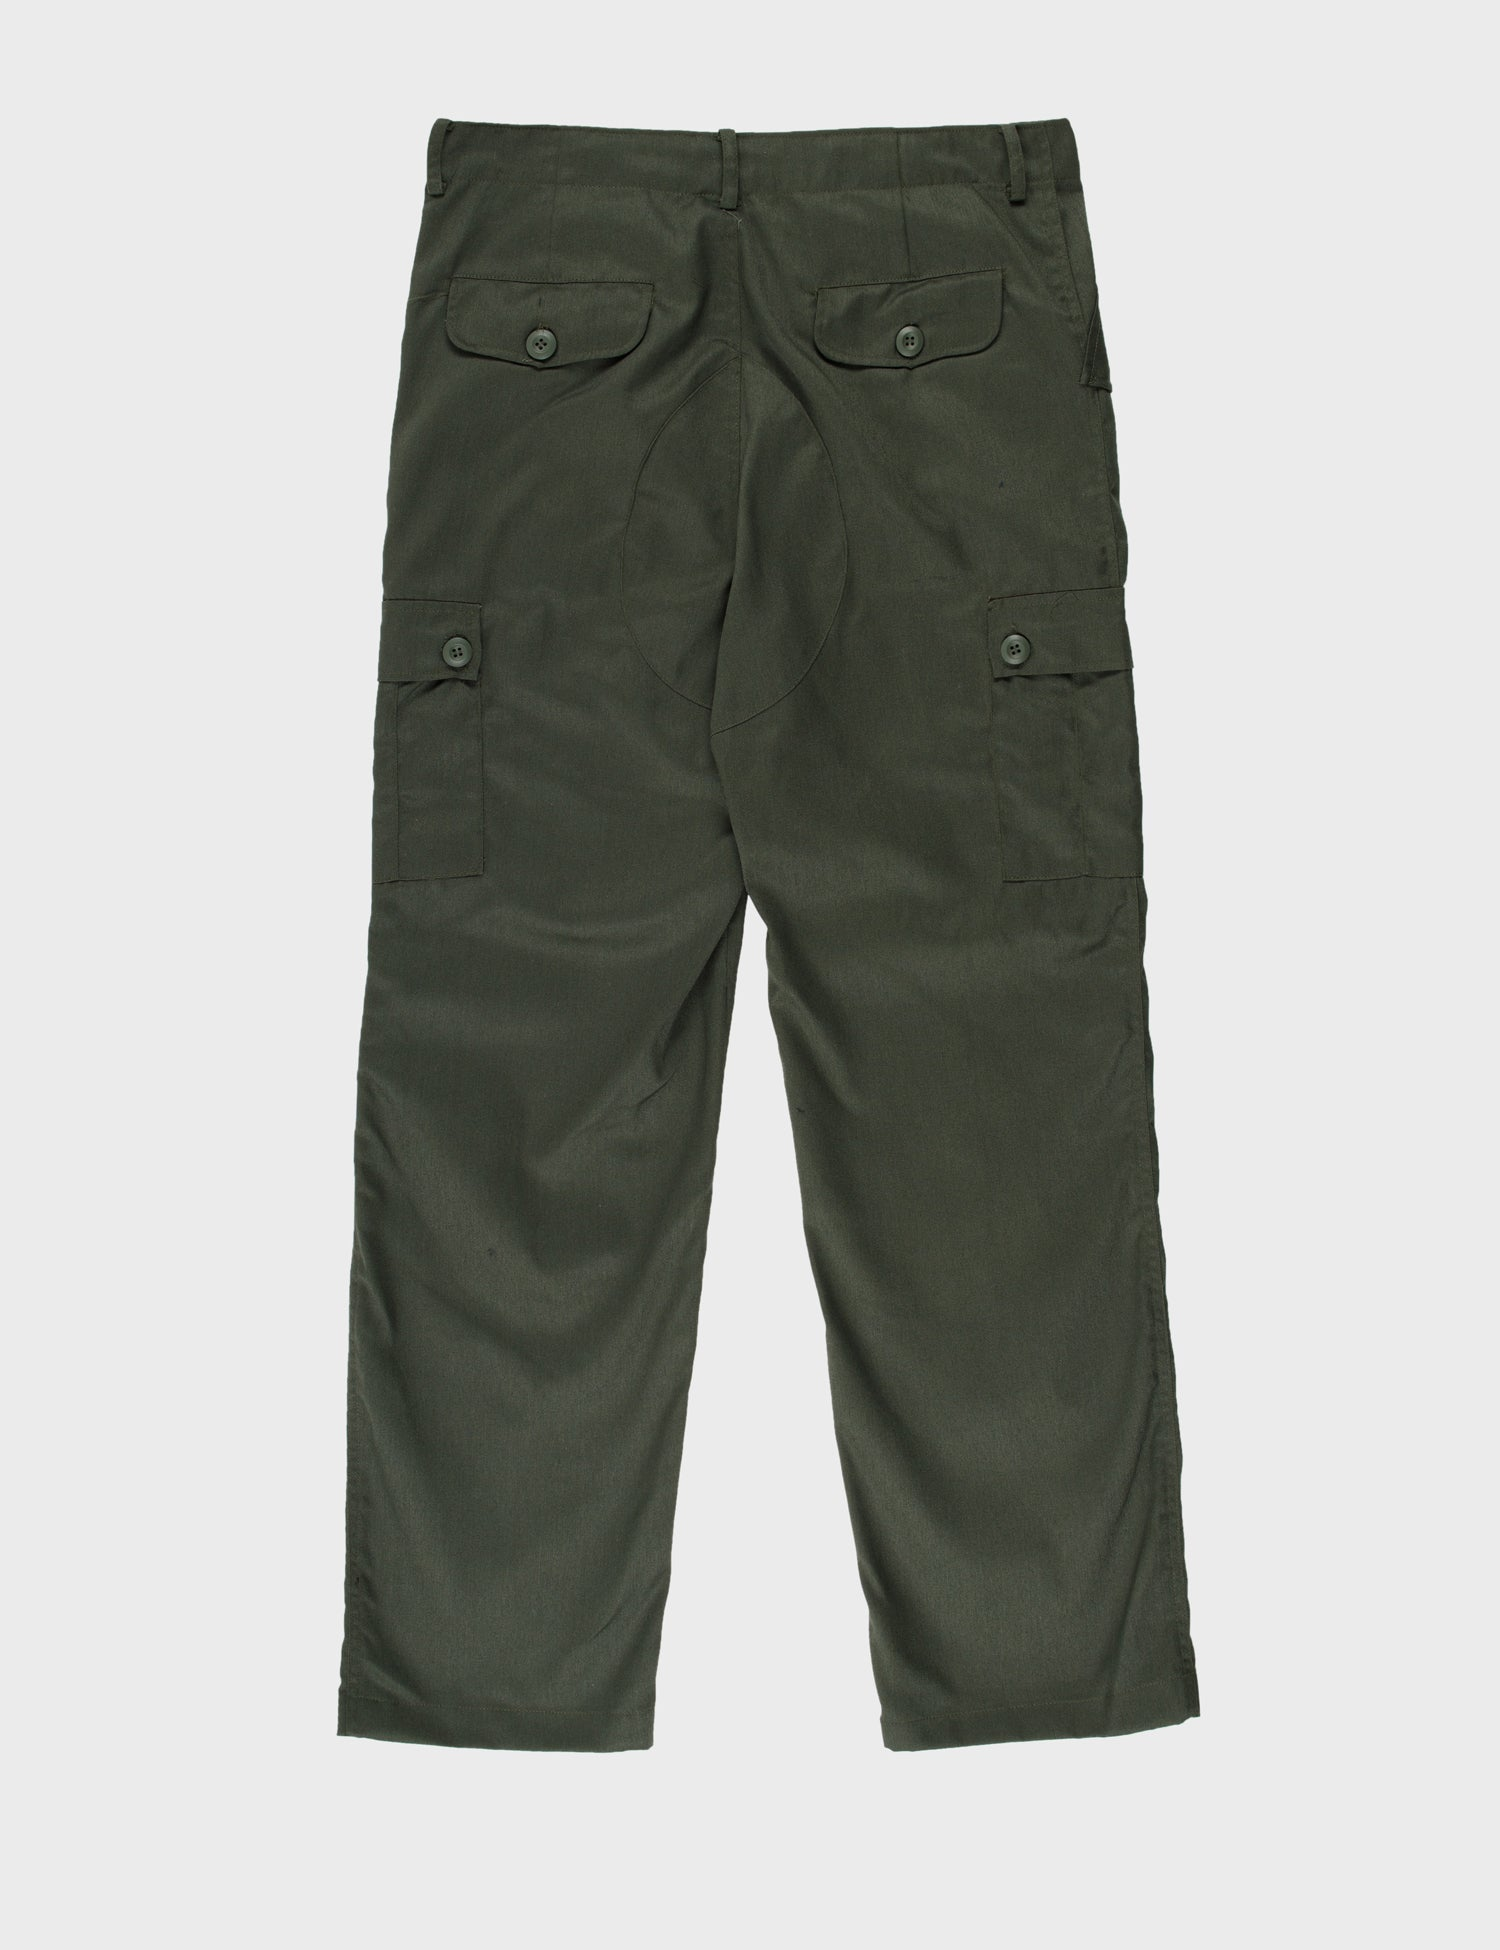 Aviation Pants (Olive)